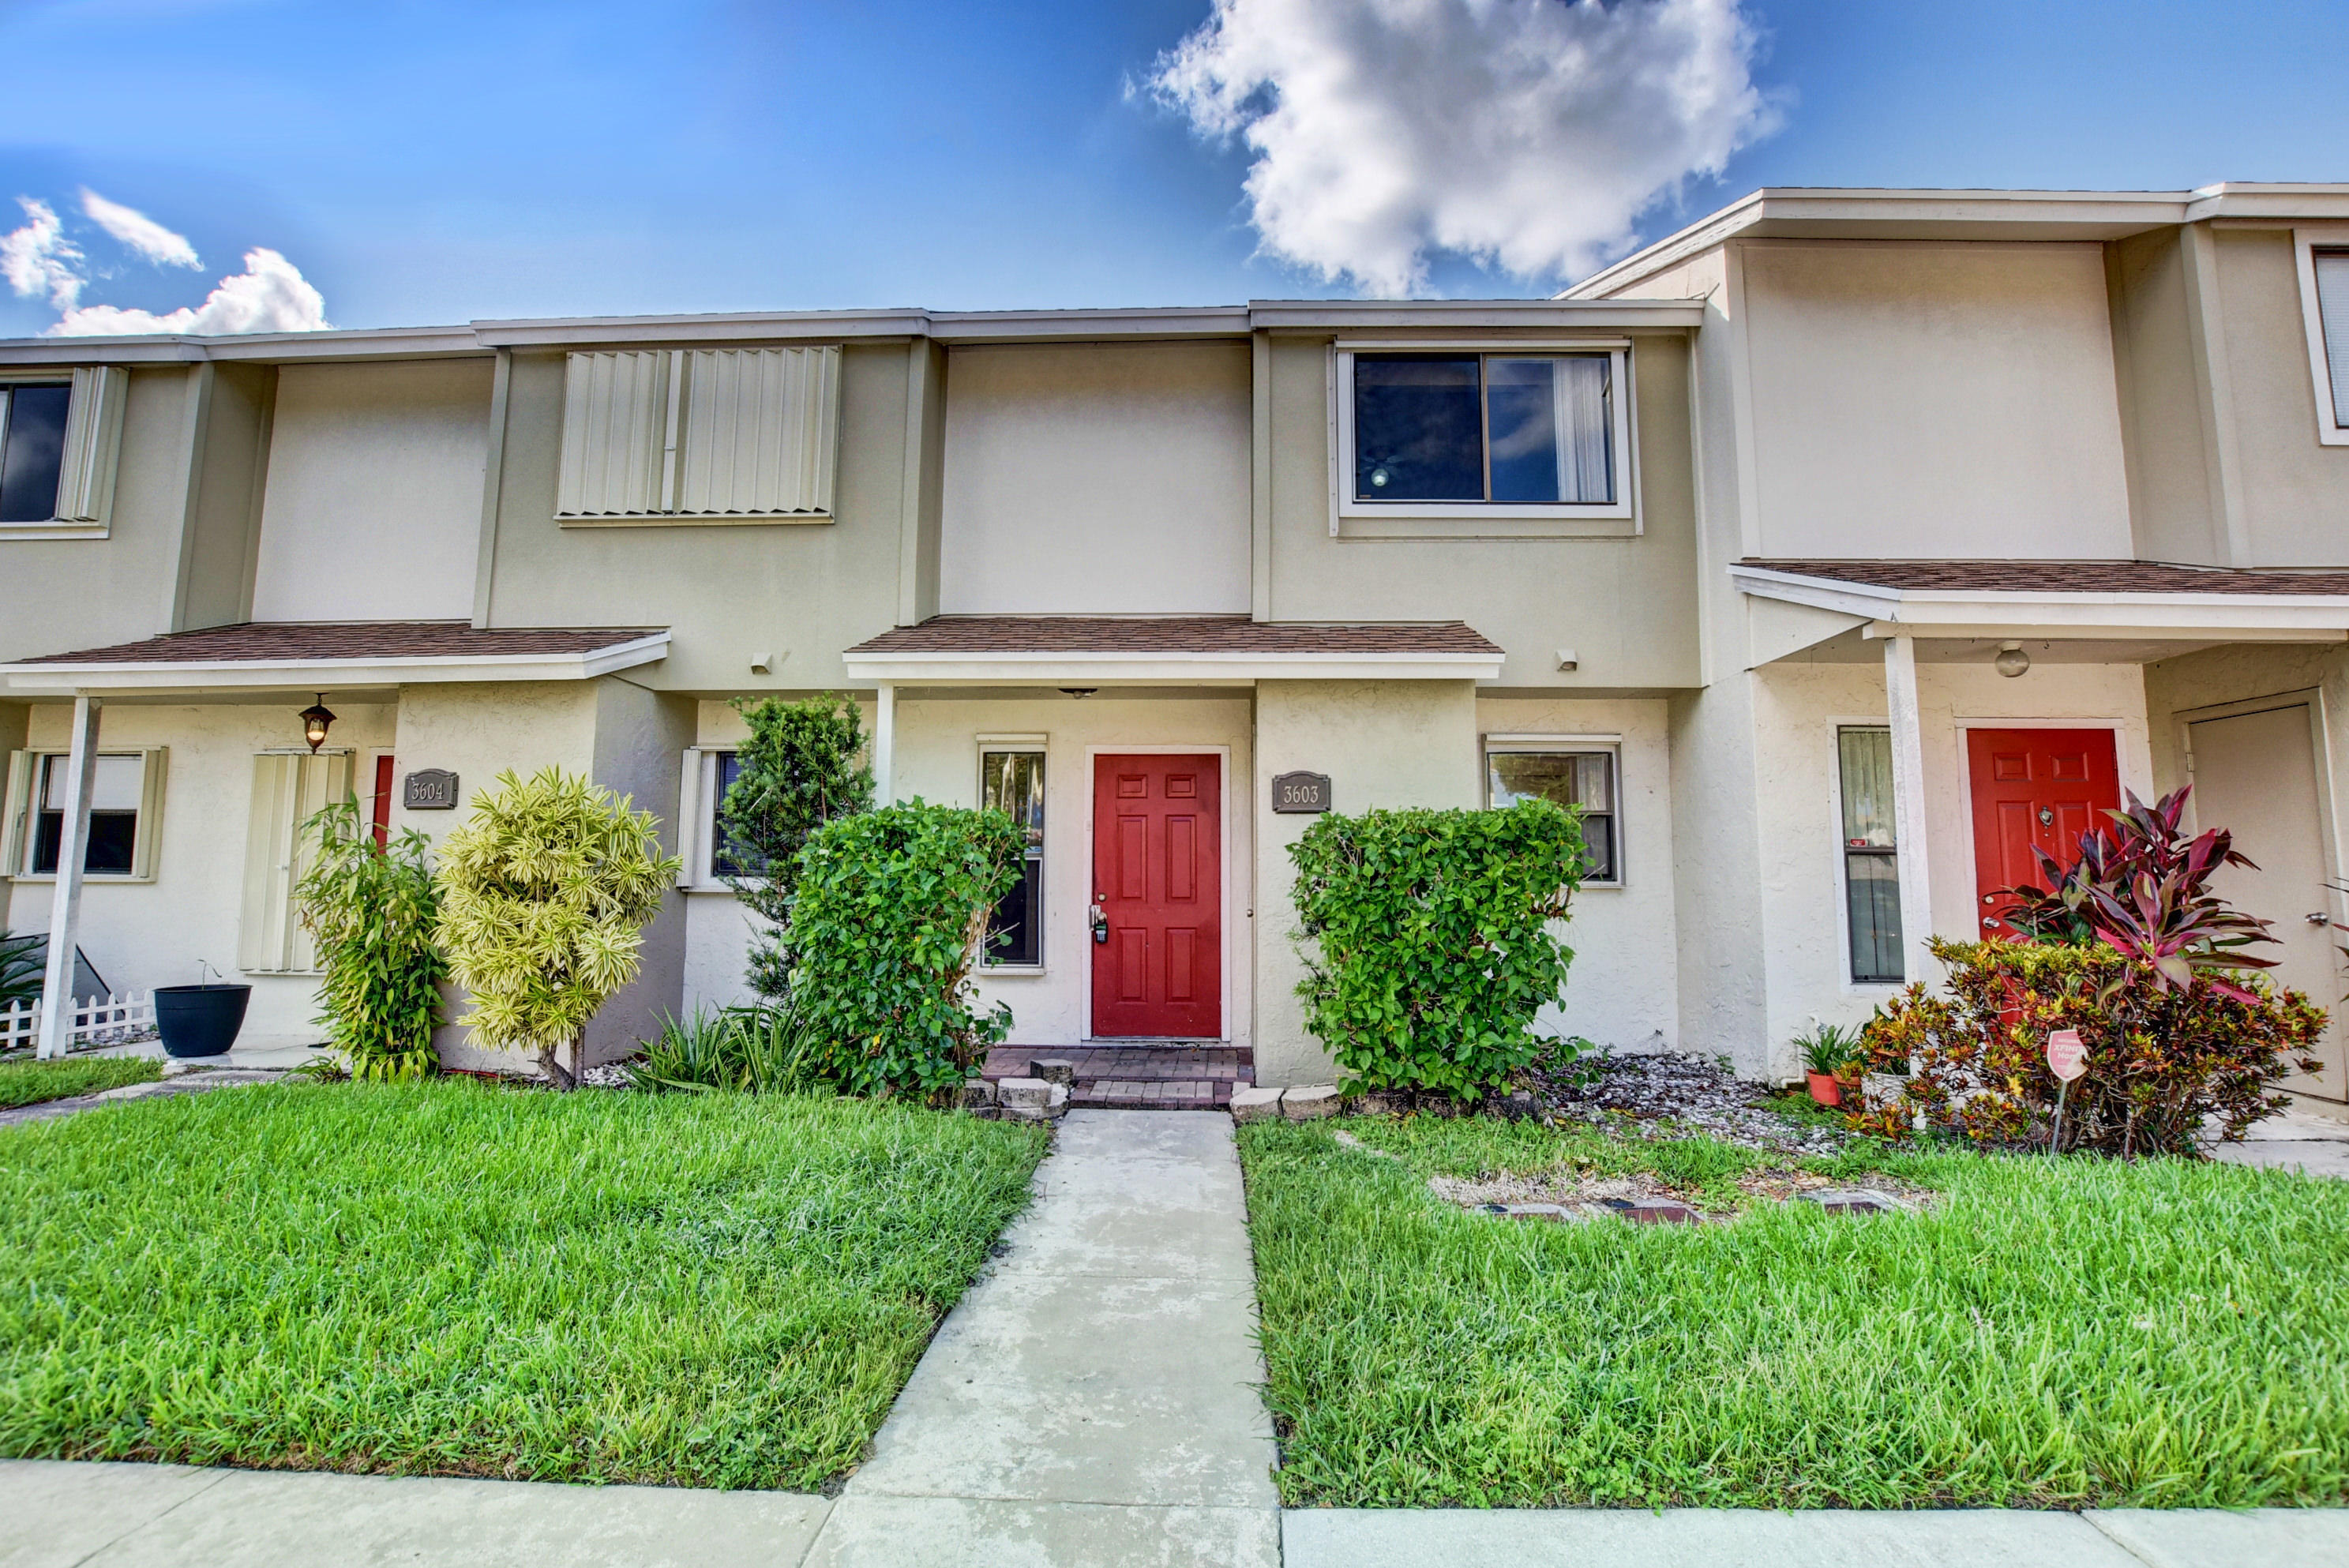 Home for sale in Canalakes Greenacres Florida